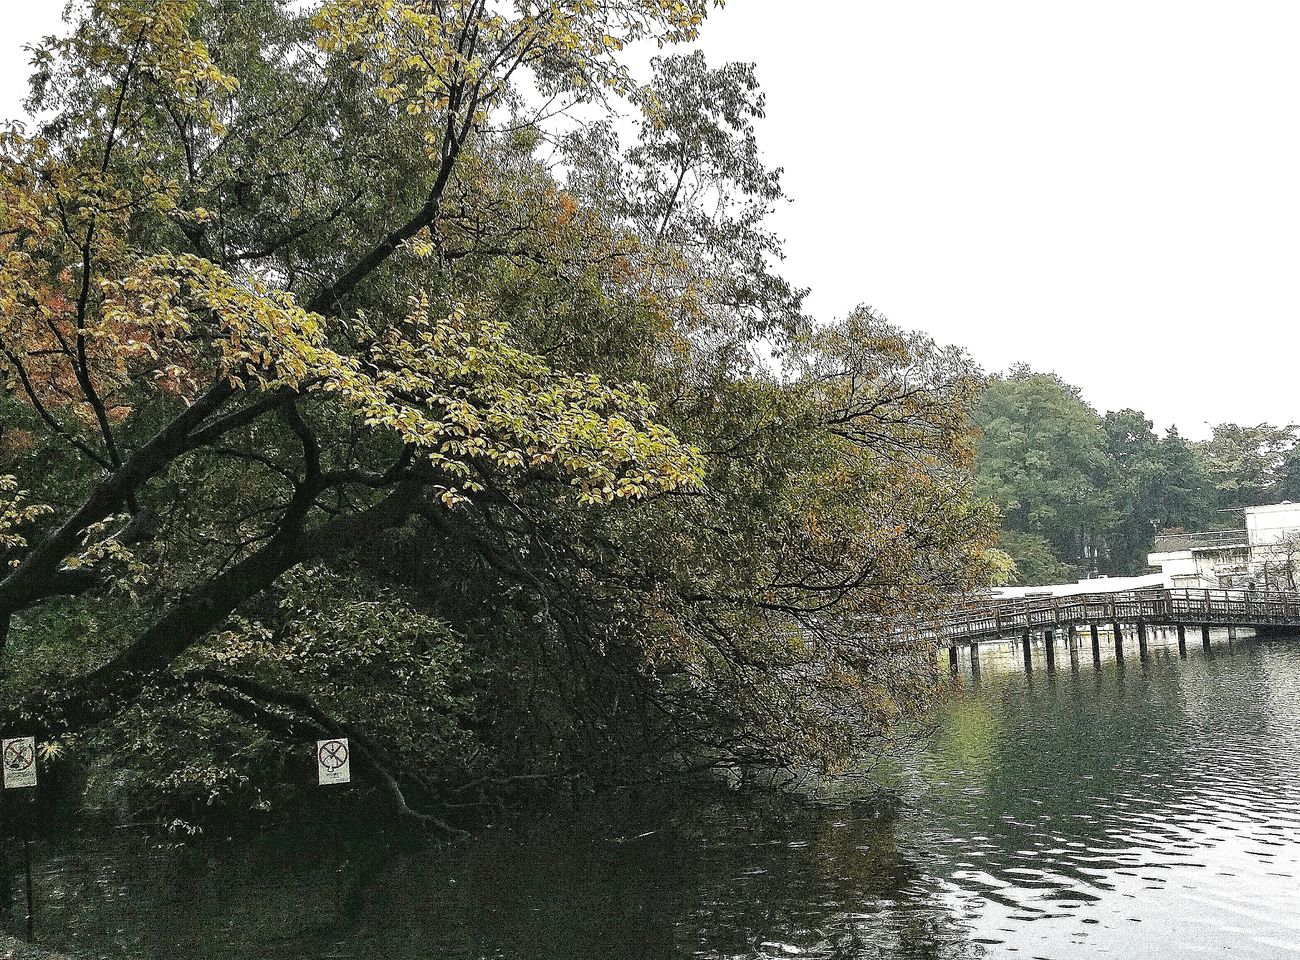 Trees Lake Autumn Fall 秋 Autumn Colours Autumn 2015 Tokyoautumn2015 Nature Tokyonature Urbannature Naturelover. EyeEm Nature Lover Naturecollection Naturephotography Inokashira Park 1913 1918 Gift To Tokyo Emperor Of Japan Tokyo Japan Travel Photography